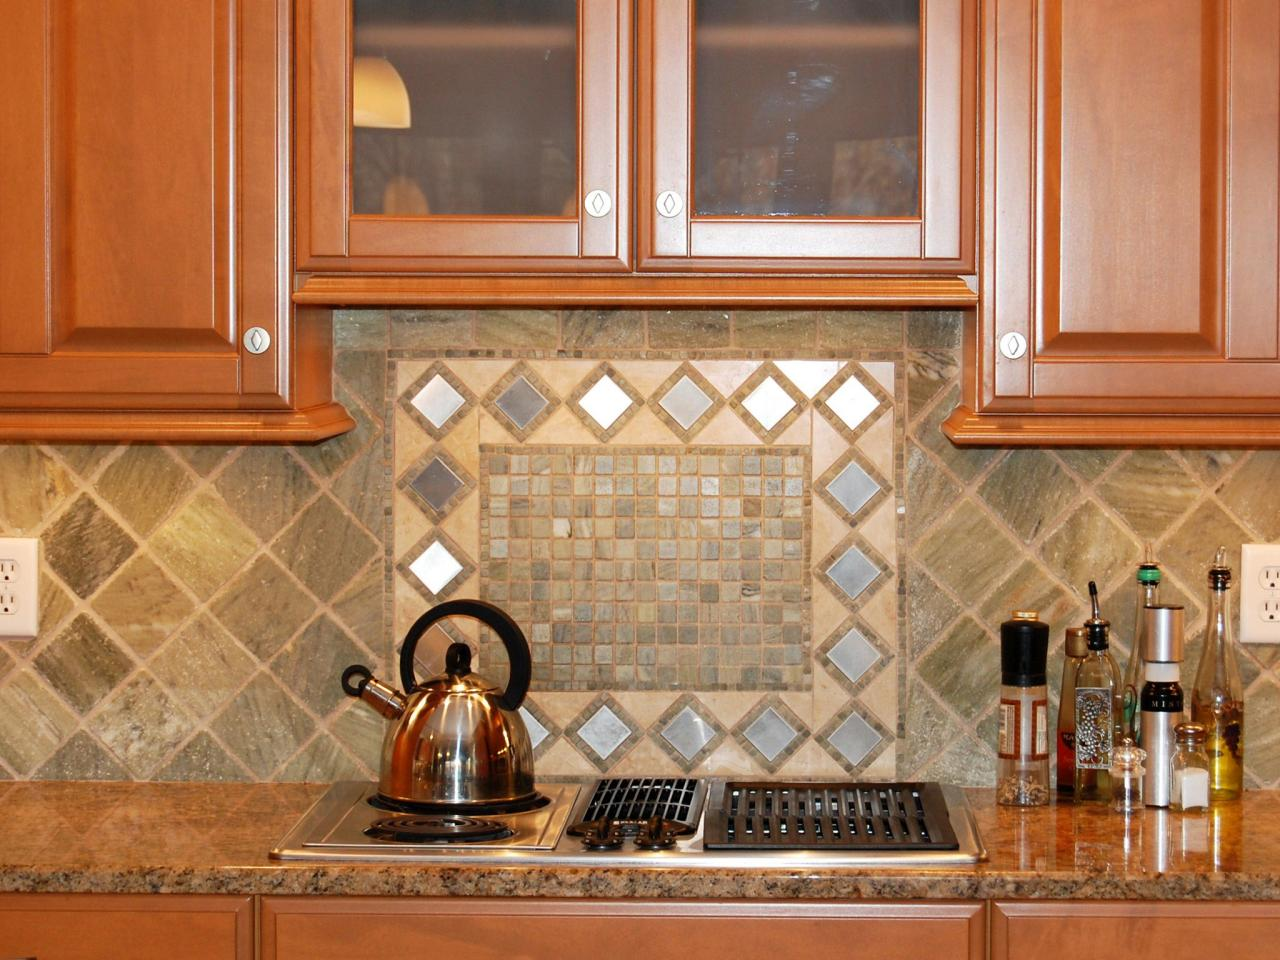 Kitchen backsplash tile ideas hgtv Backsplash mosaic tile